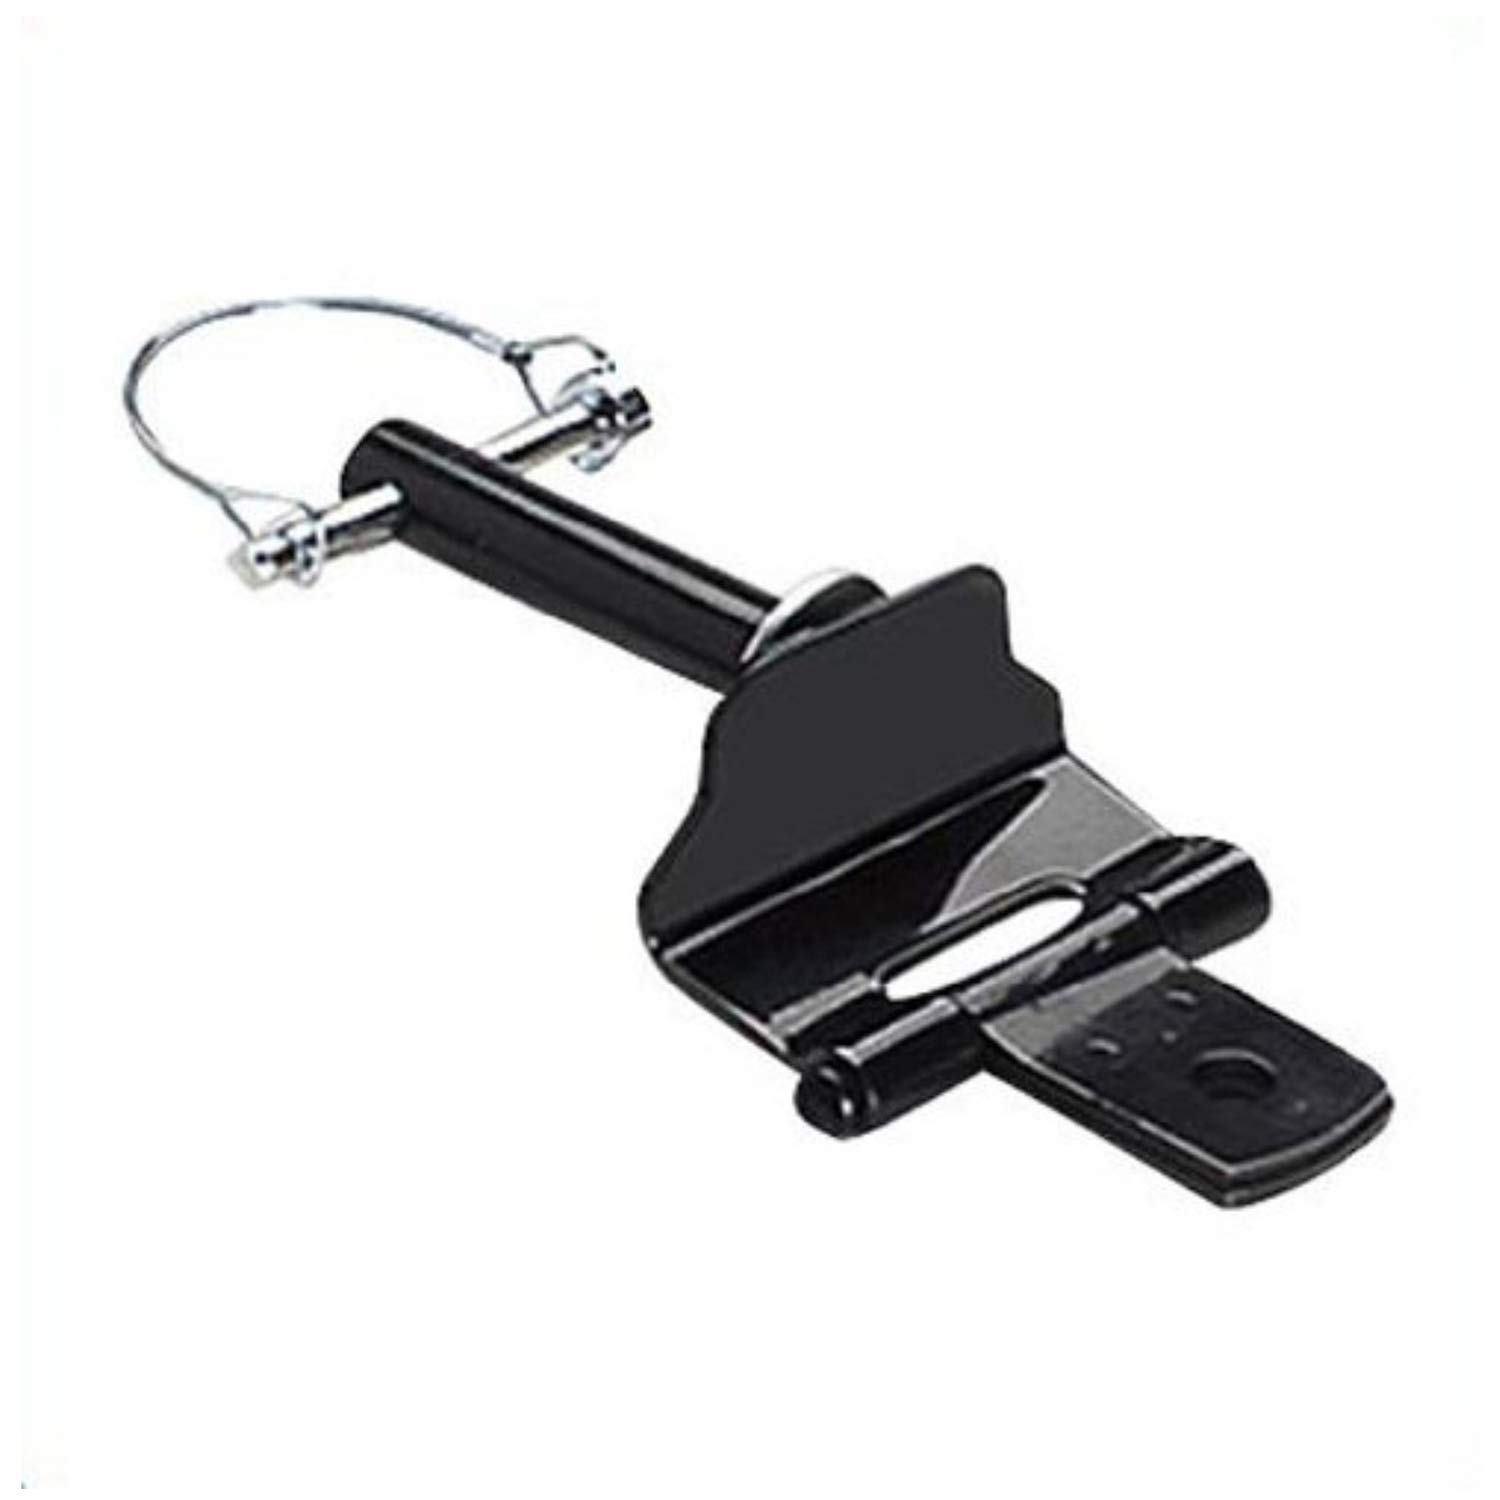 Polaris Standard Hitch - pt# 2876677